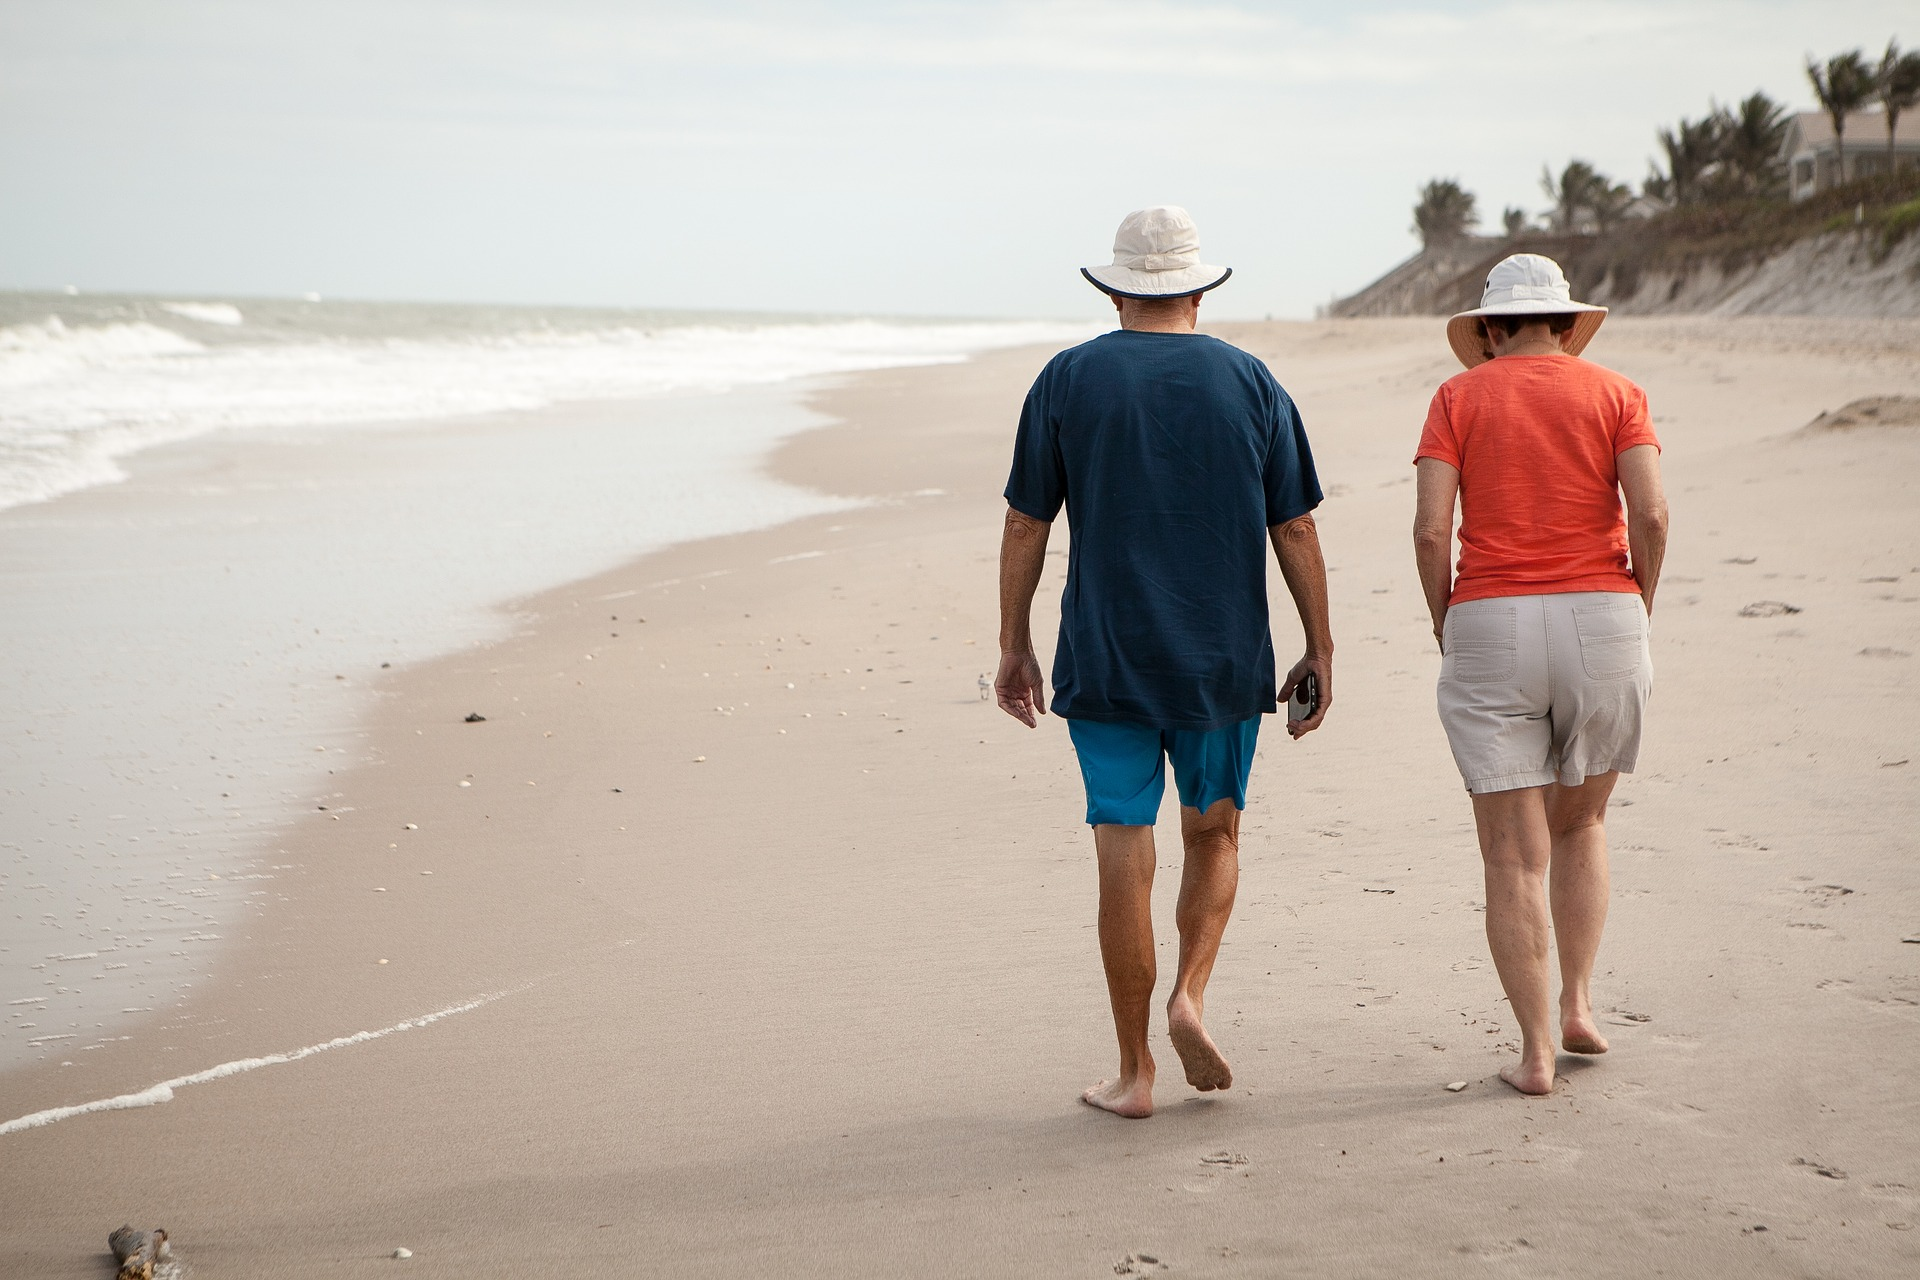 Man and woman walking on a sandy beach.